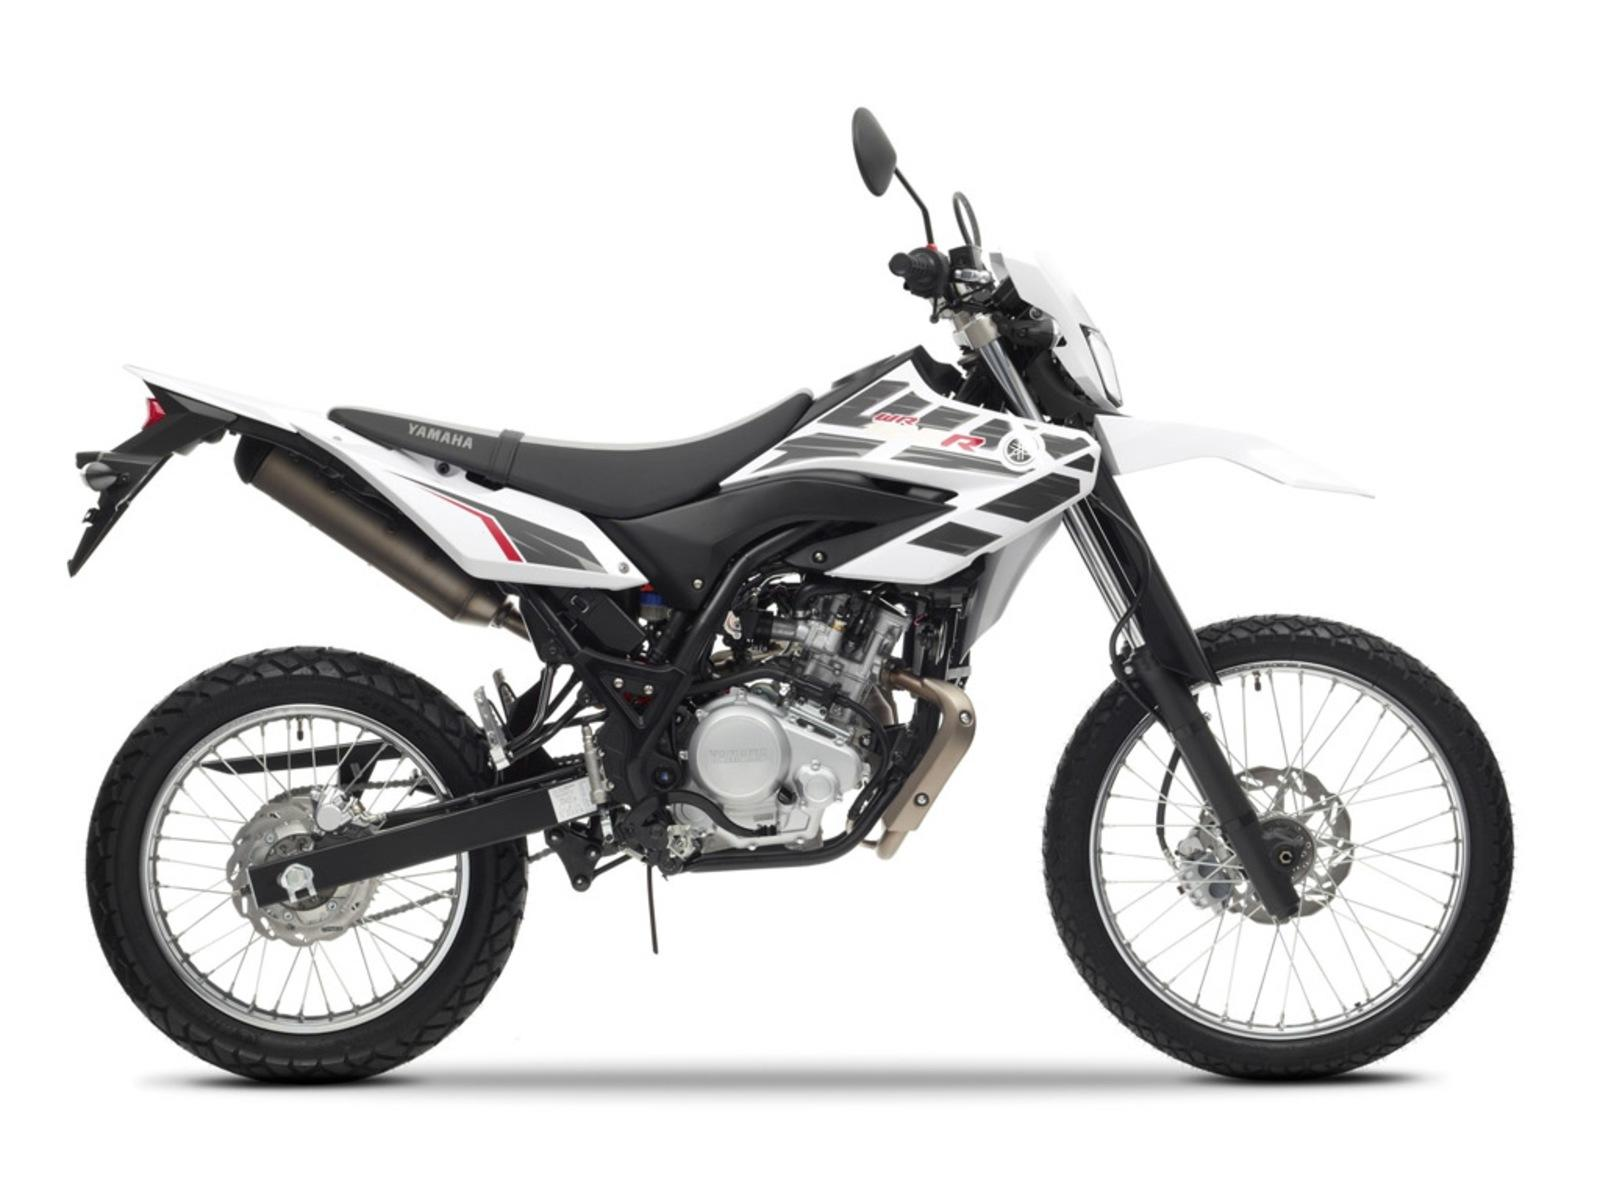 2014 yamaha wr125r review top speed. Black Bedroom Furniture Sets. Home Design Ideas